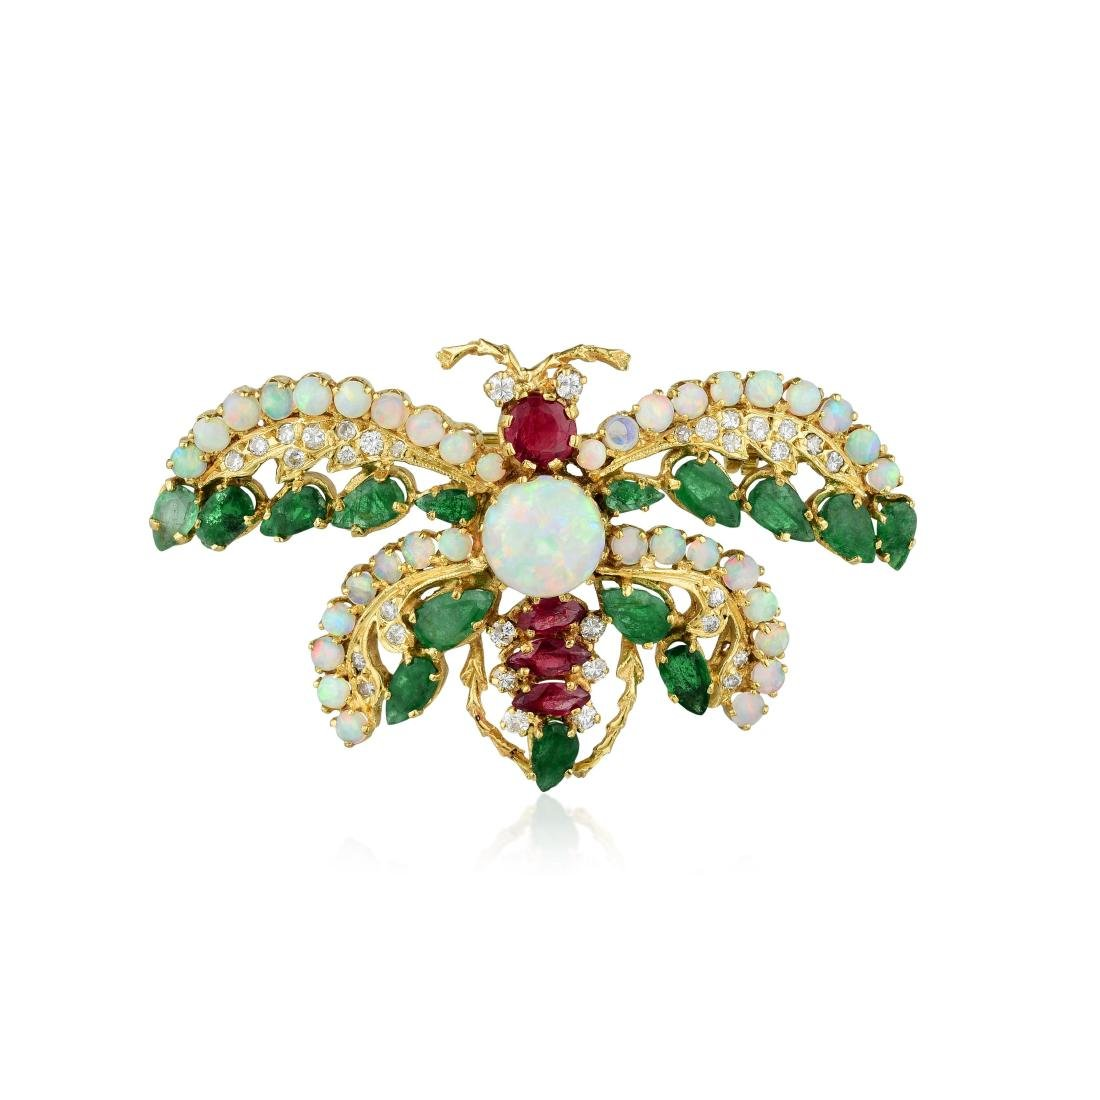 An 18K Gold Opal Ruby Emerald and Diamond Brooch